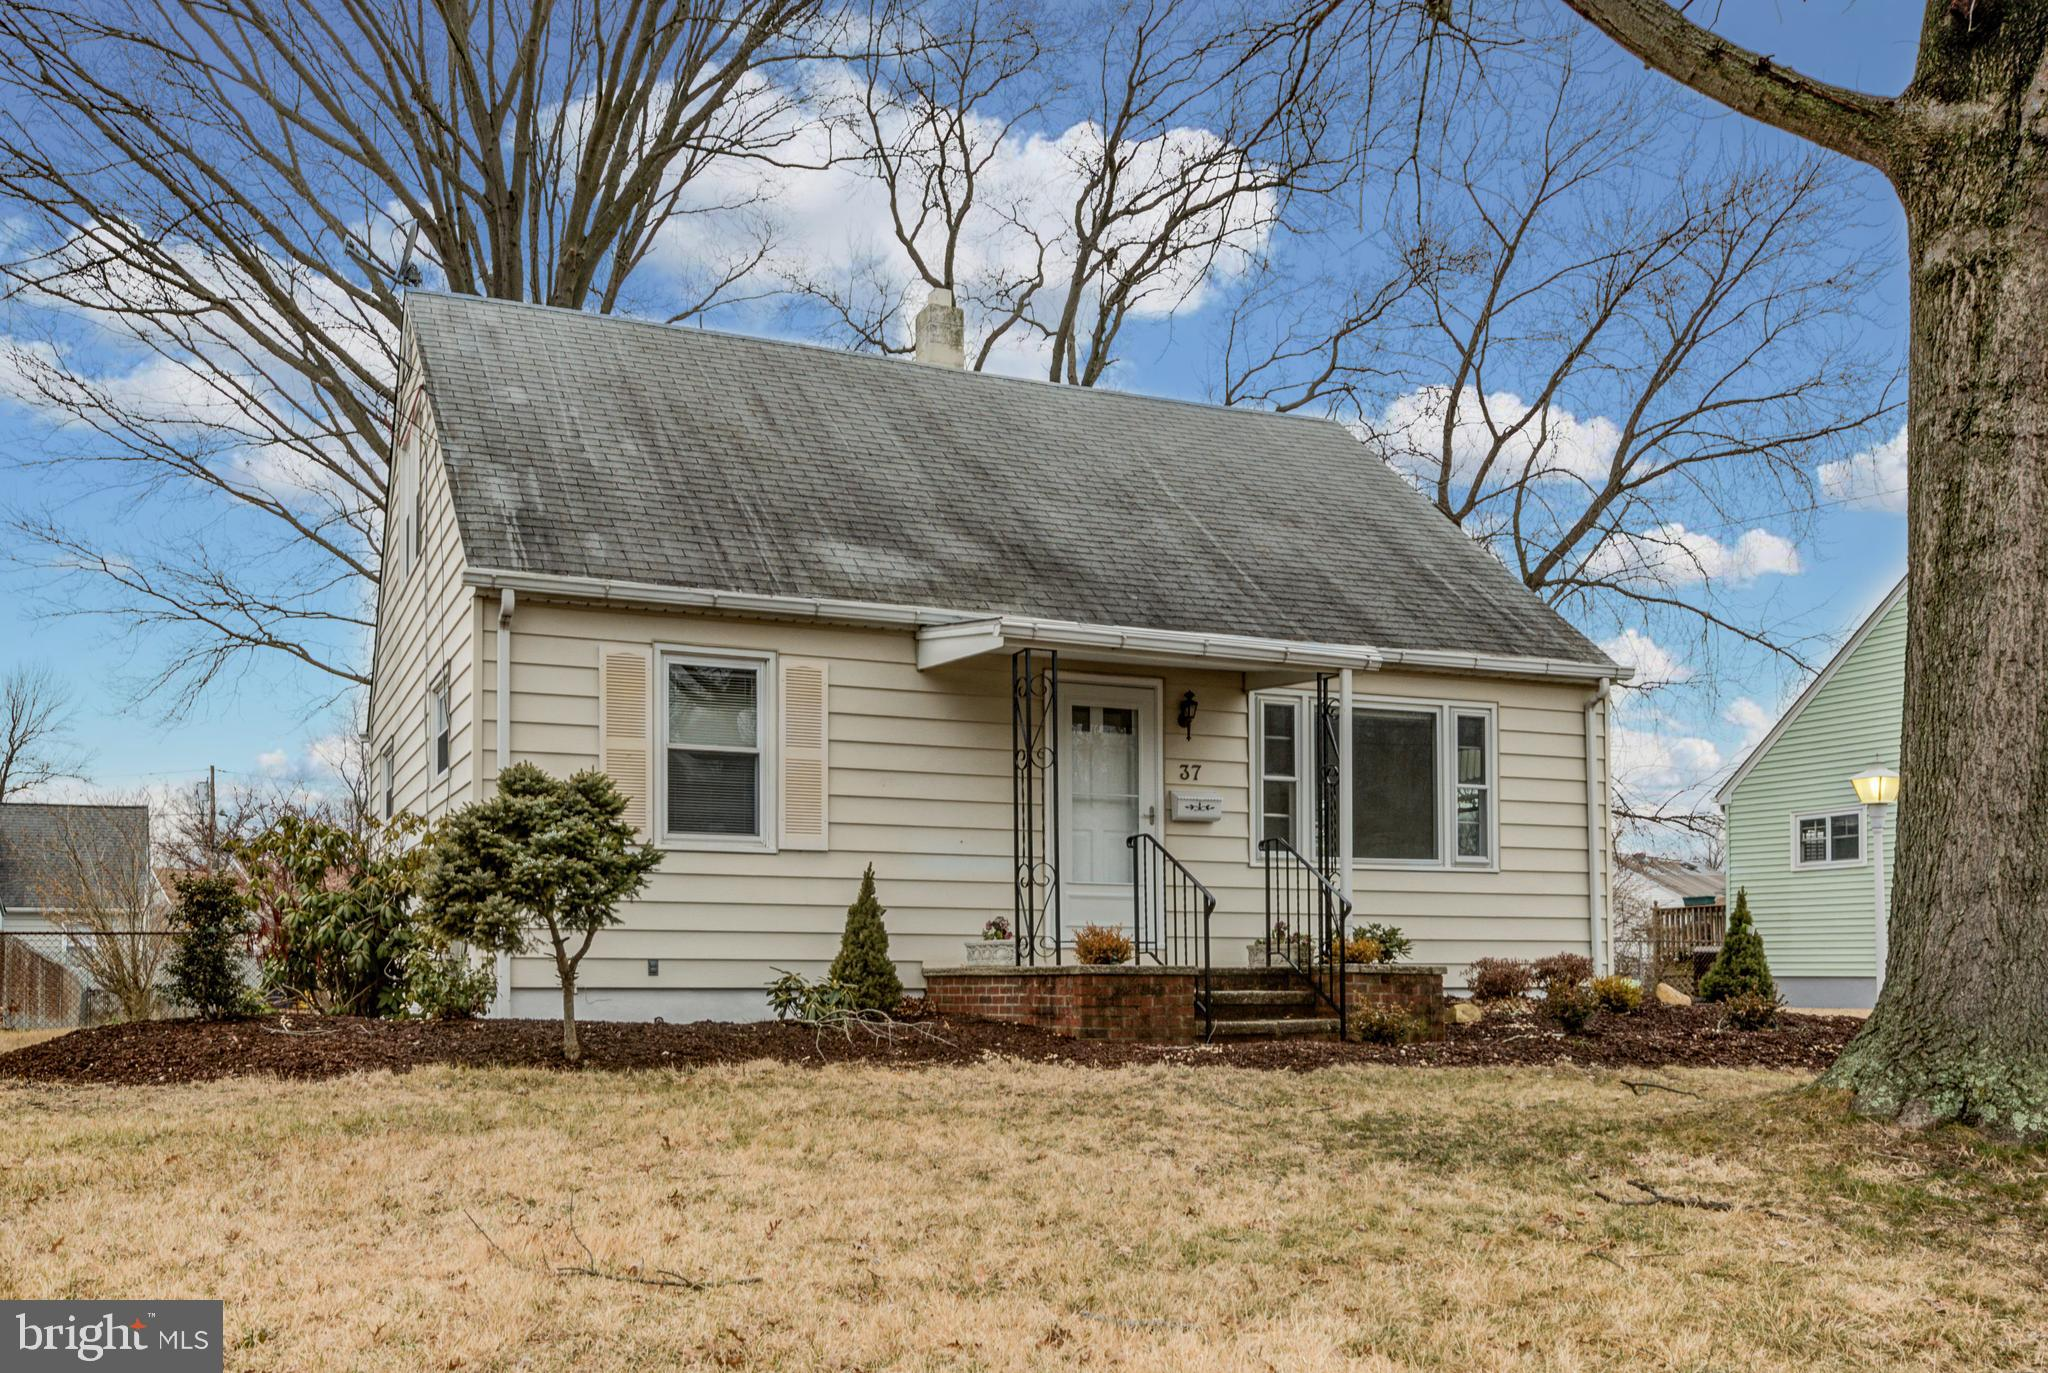 37 Willow Road, Bordentown, NJ 08505 - SOLD LISTING, MLS # NJBL242842 |  RE/MAX of Reading